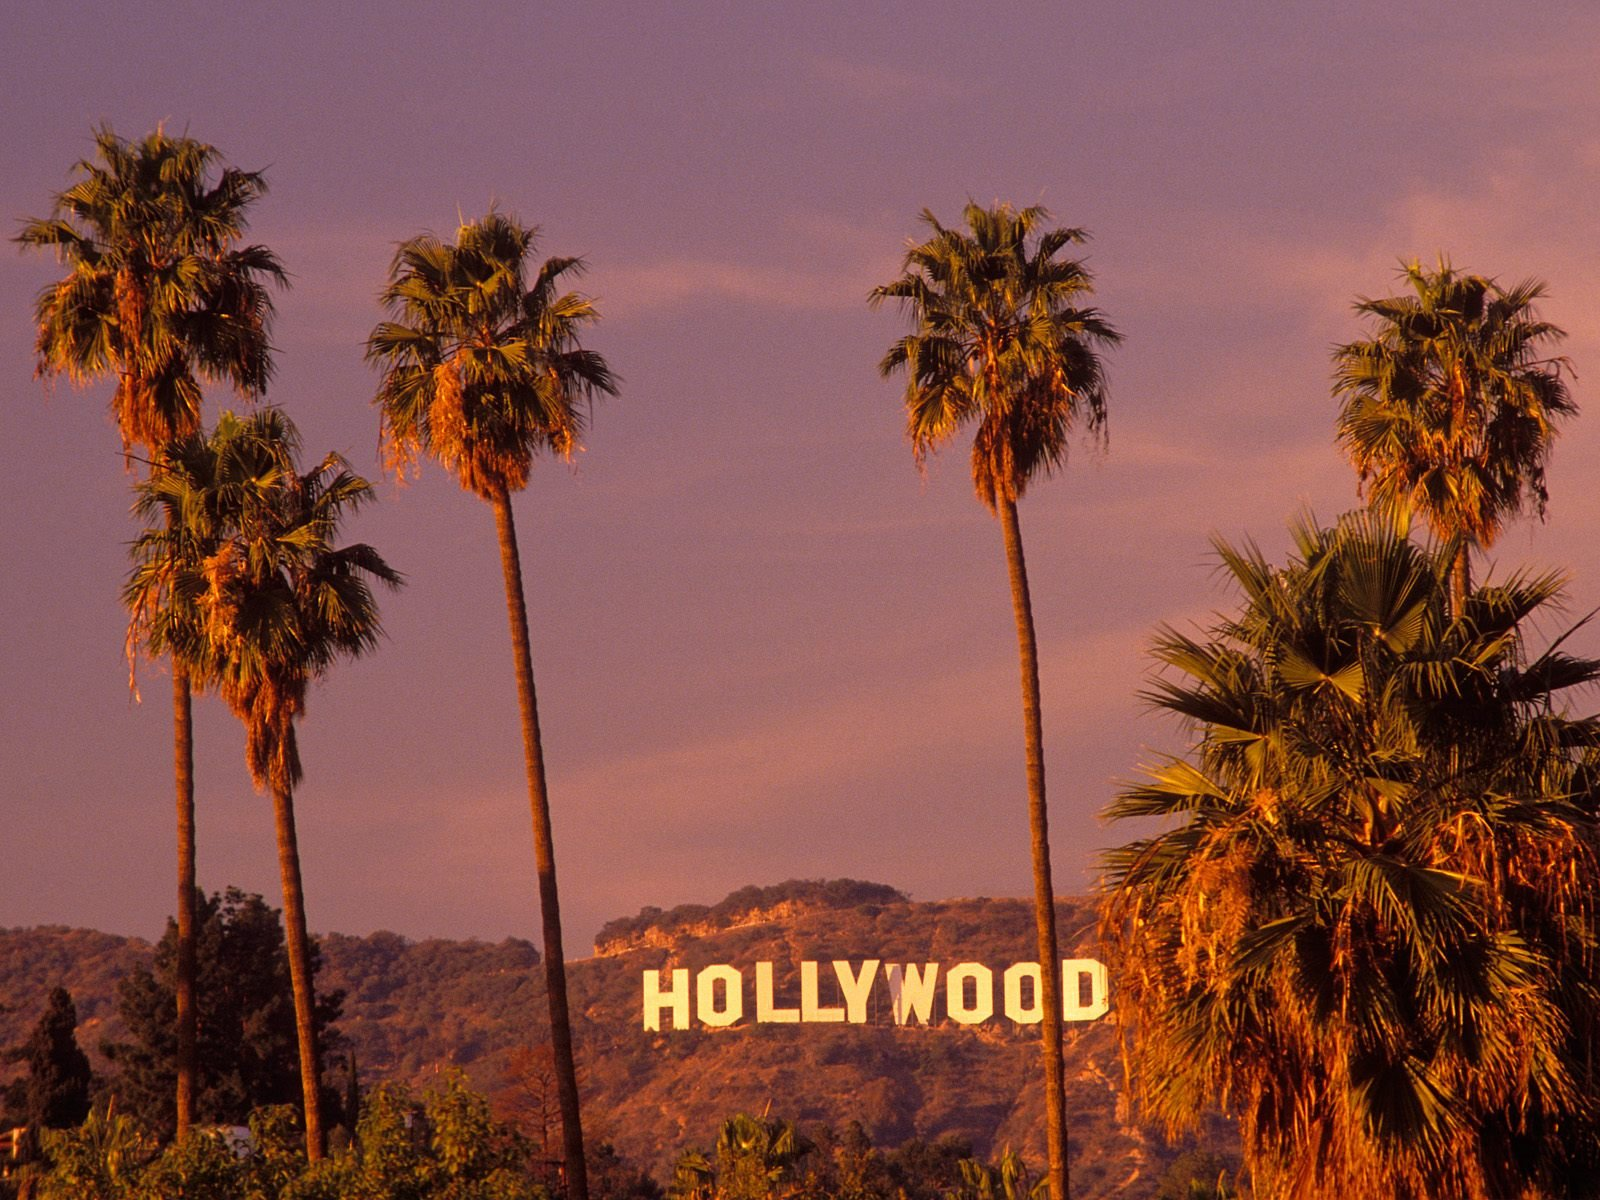 Download Background   Hollywood California   Cool Backgrounds 1600x1200